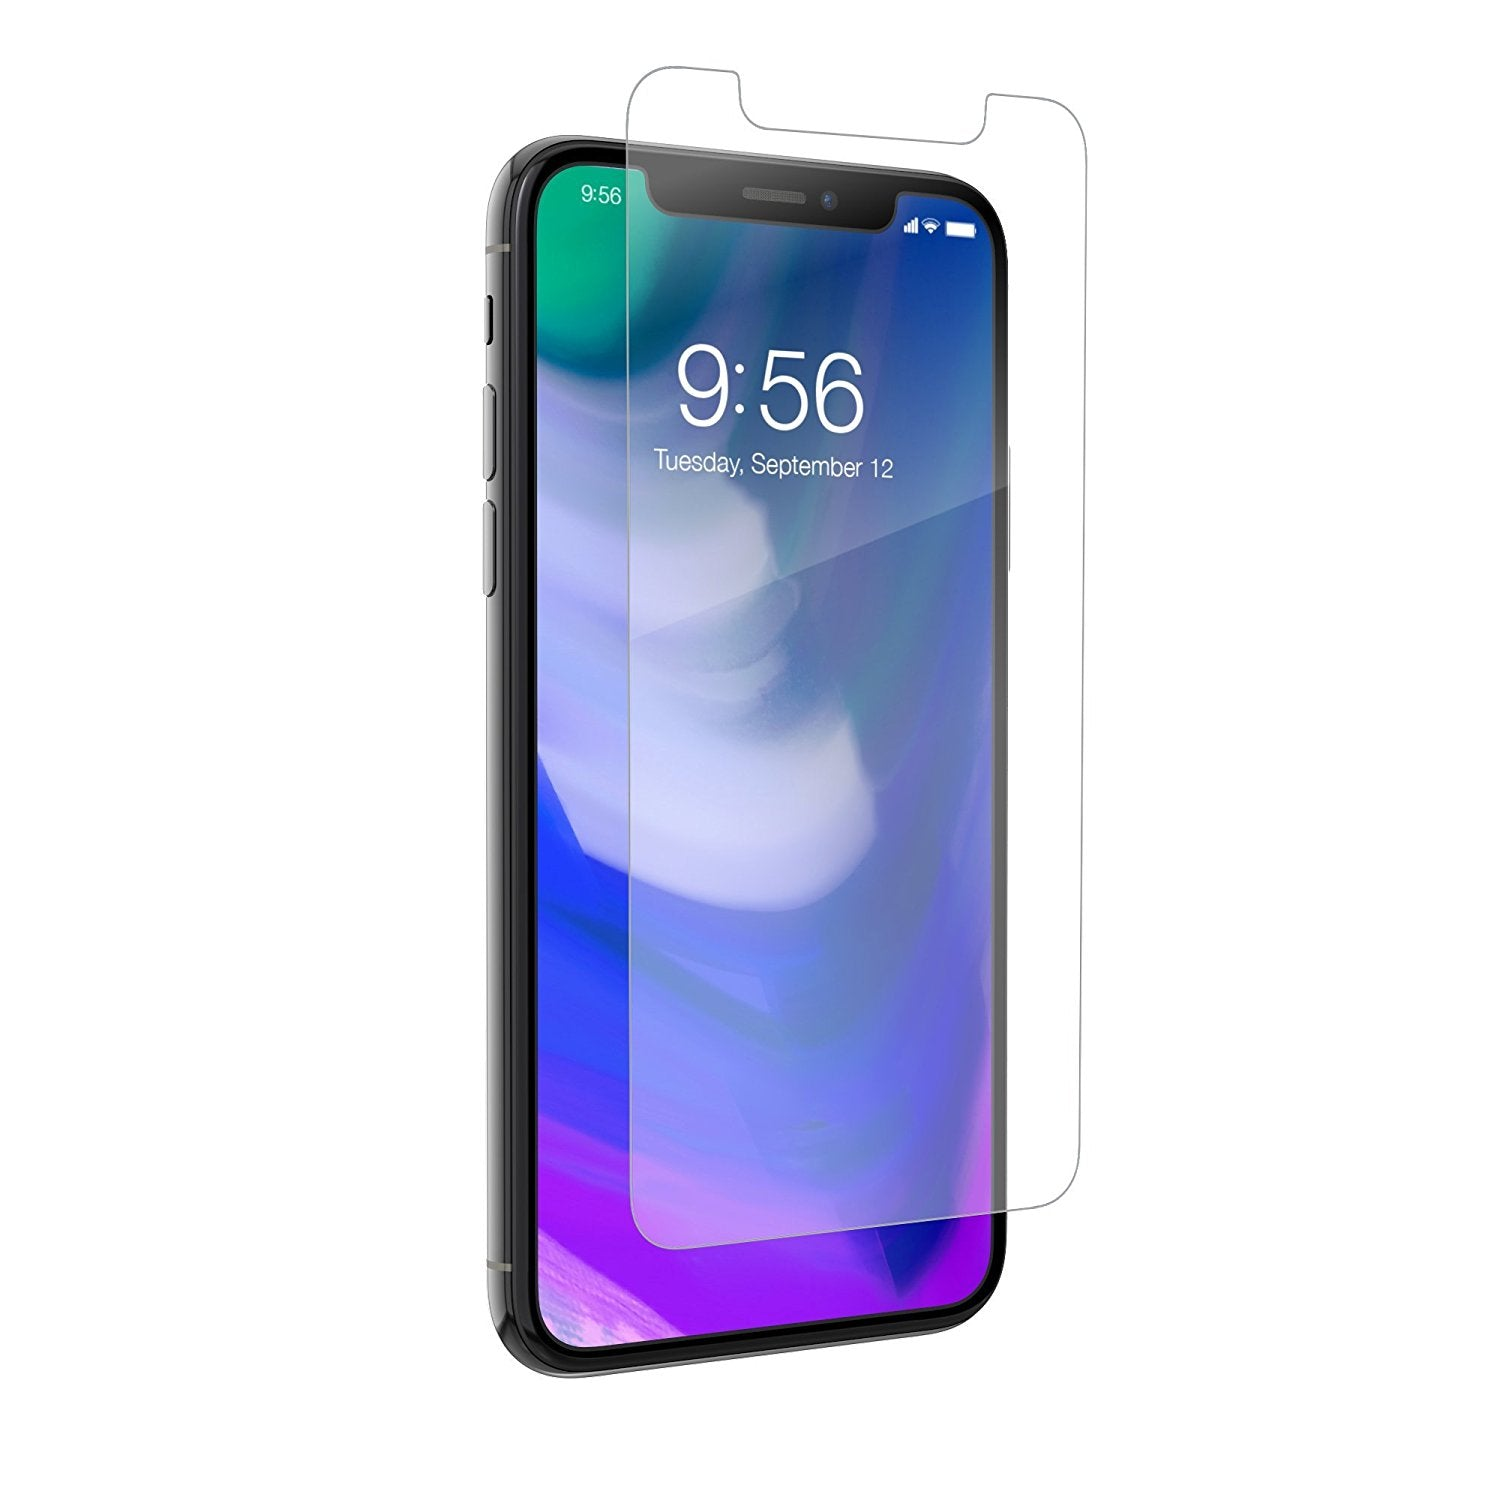 new product 75e7f e5b8c Tempered Glass Invisible Shield Glass For iPhone X, iPhone 8, 8 Plus,  iPhone 7, 7 Plus, iPhone 6S, 6S Plus, iPhone 6, 6 Plus. -